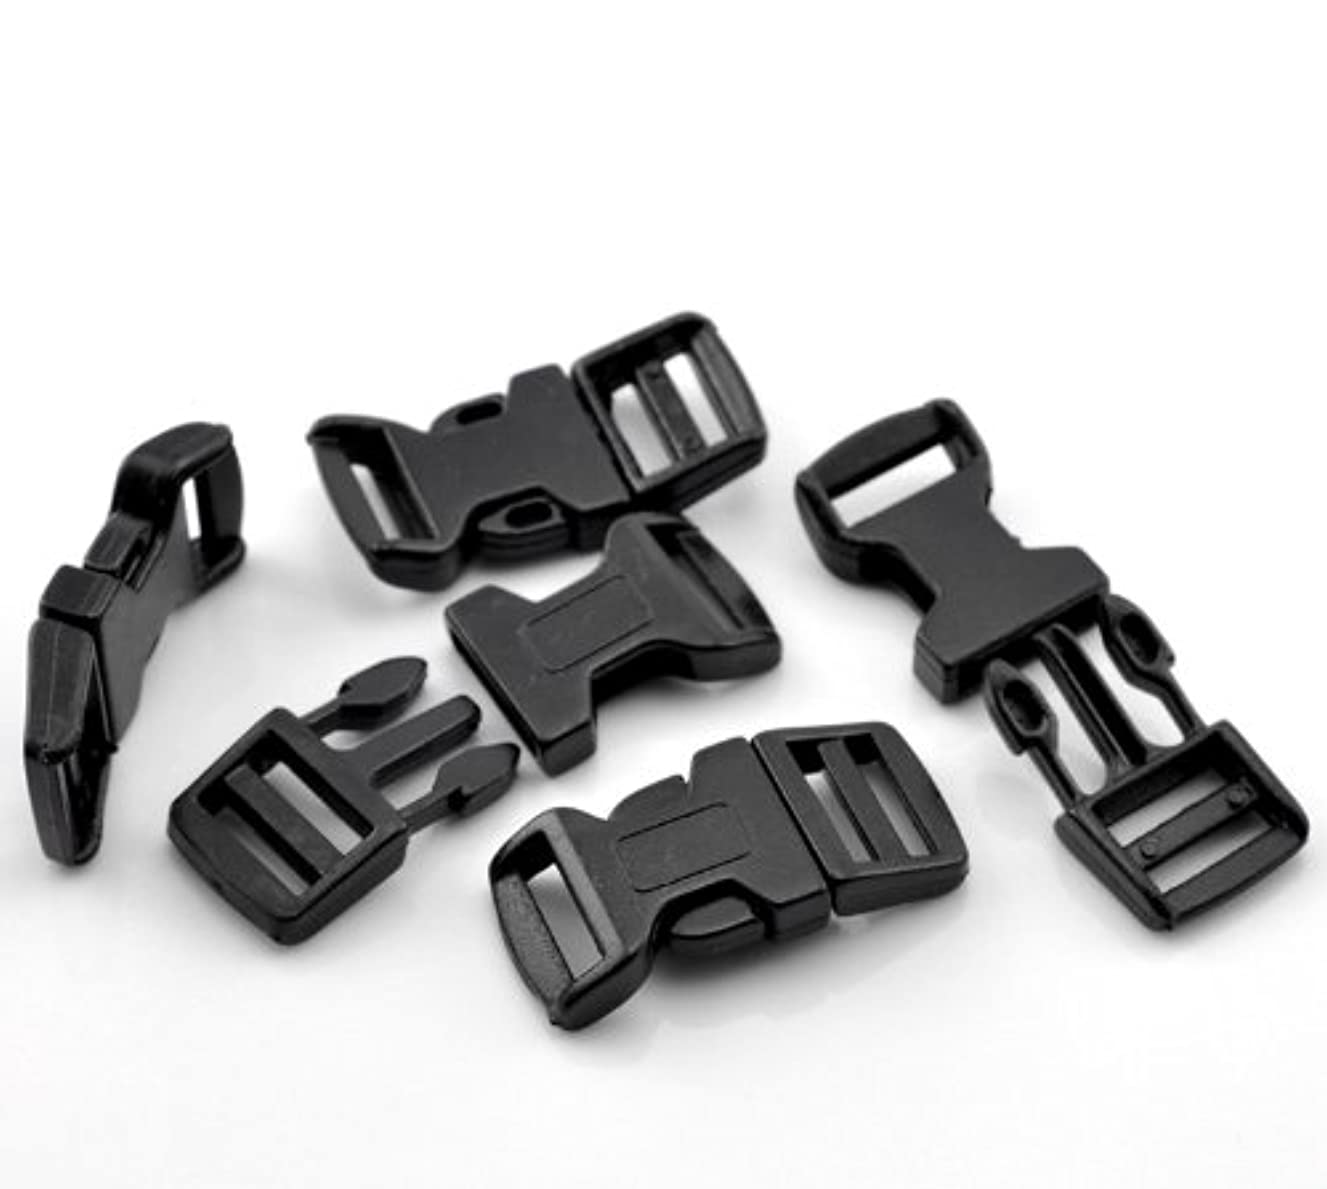 PEPPERLONELY Brand, 50 Sets Black 550 Curved Survival Bracelet Plastic Buckle 4.6x2.1cm(1 6/8